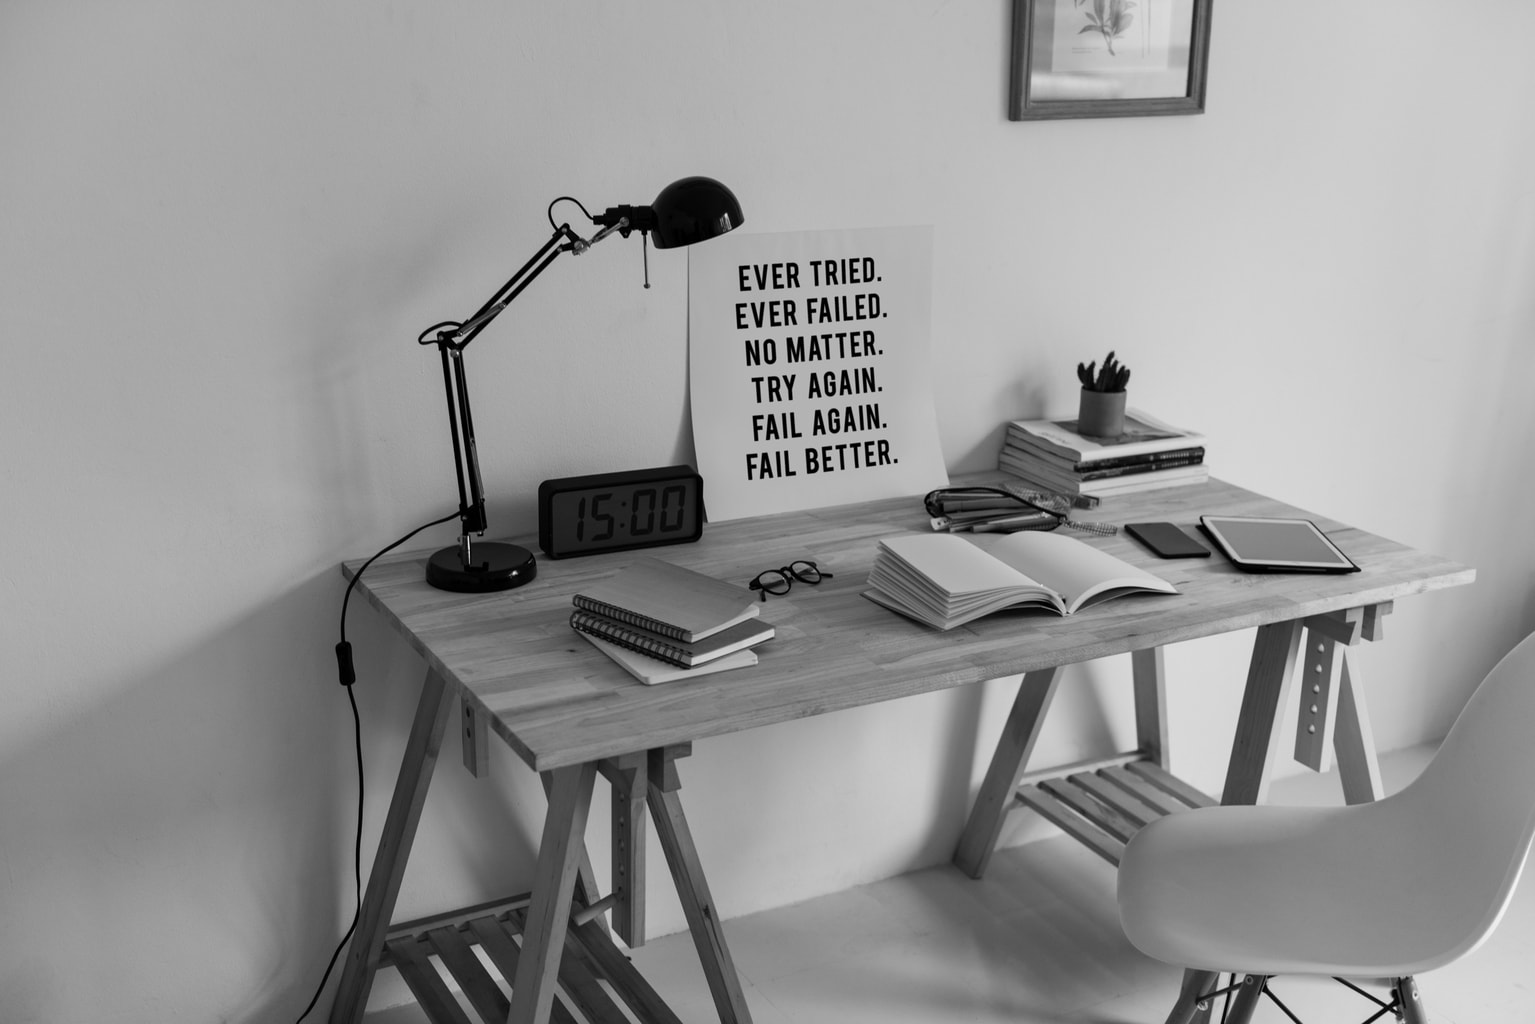 inspirational-quote-on-to-a-desk